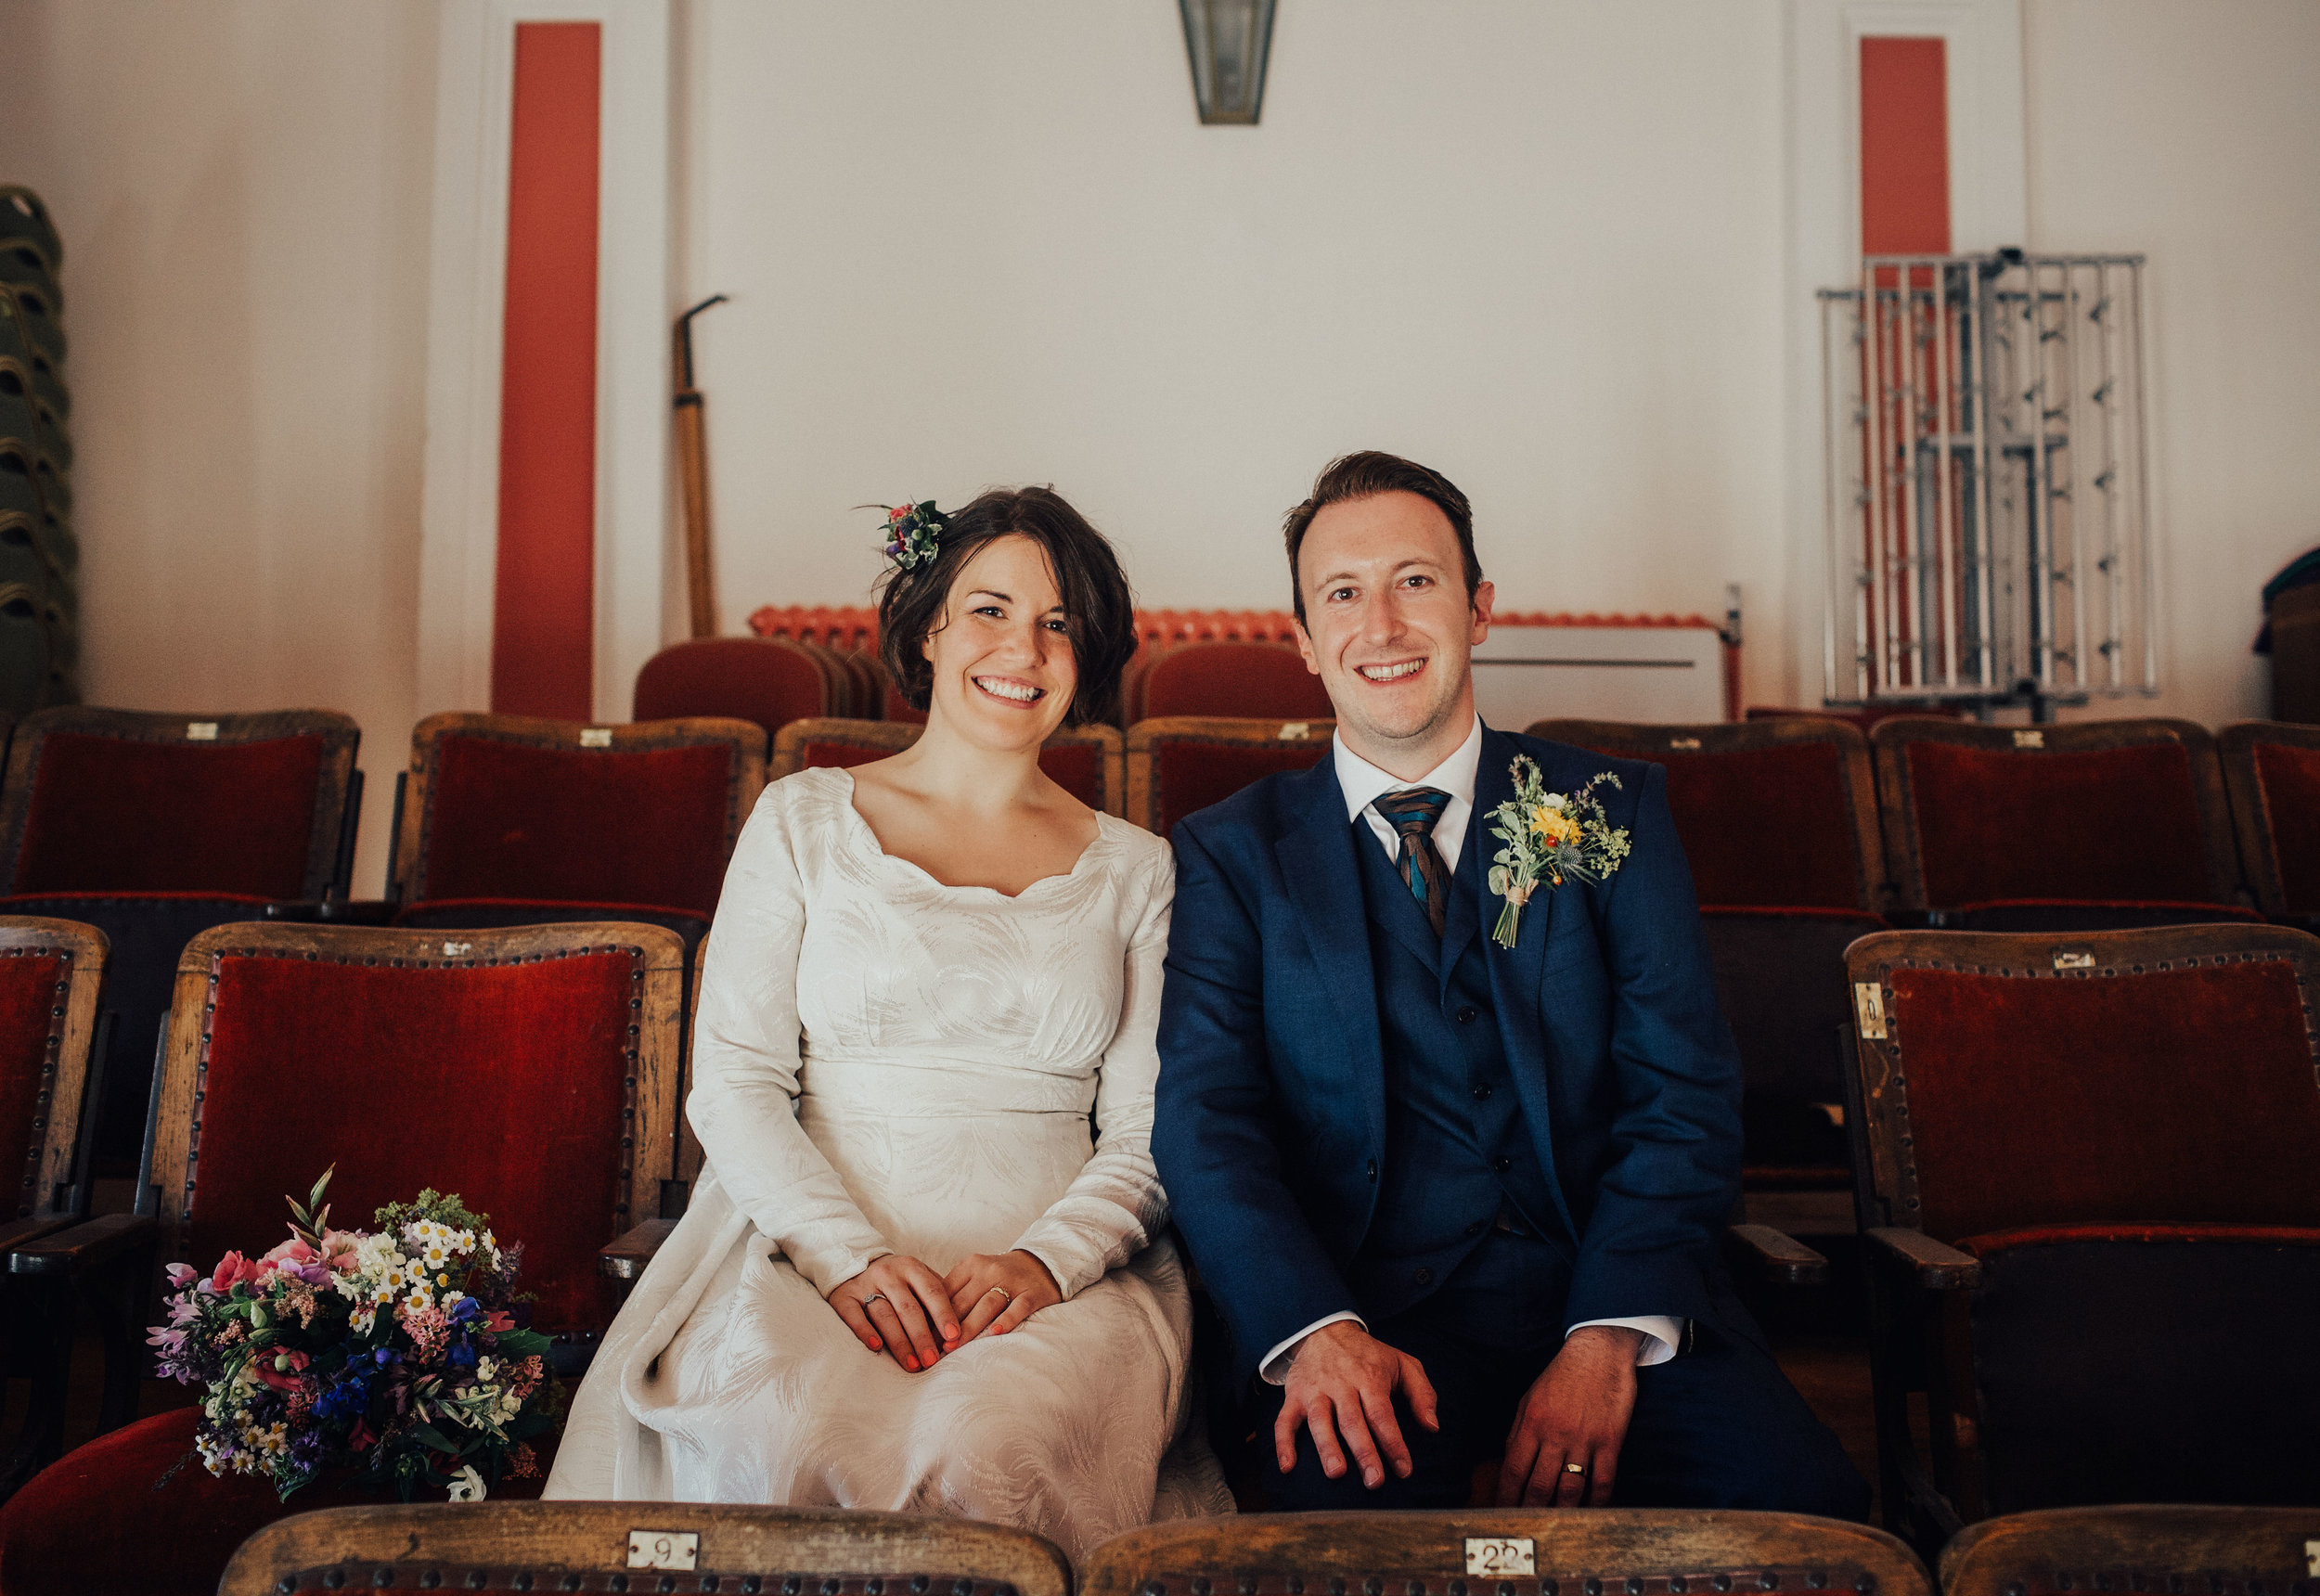 VICTORIA_HALL_SALTAIRE_VINTAGE_YORKSHIRE_WEDDING_PJ_PHILLIPS_PHOTOGRAPHY_71.jpg